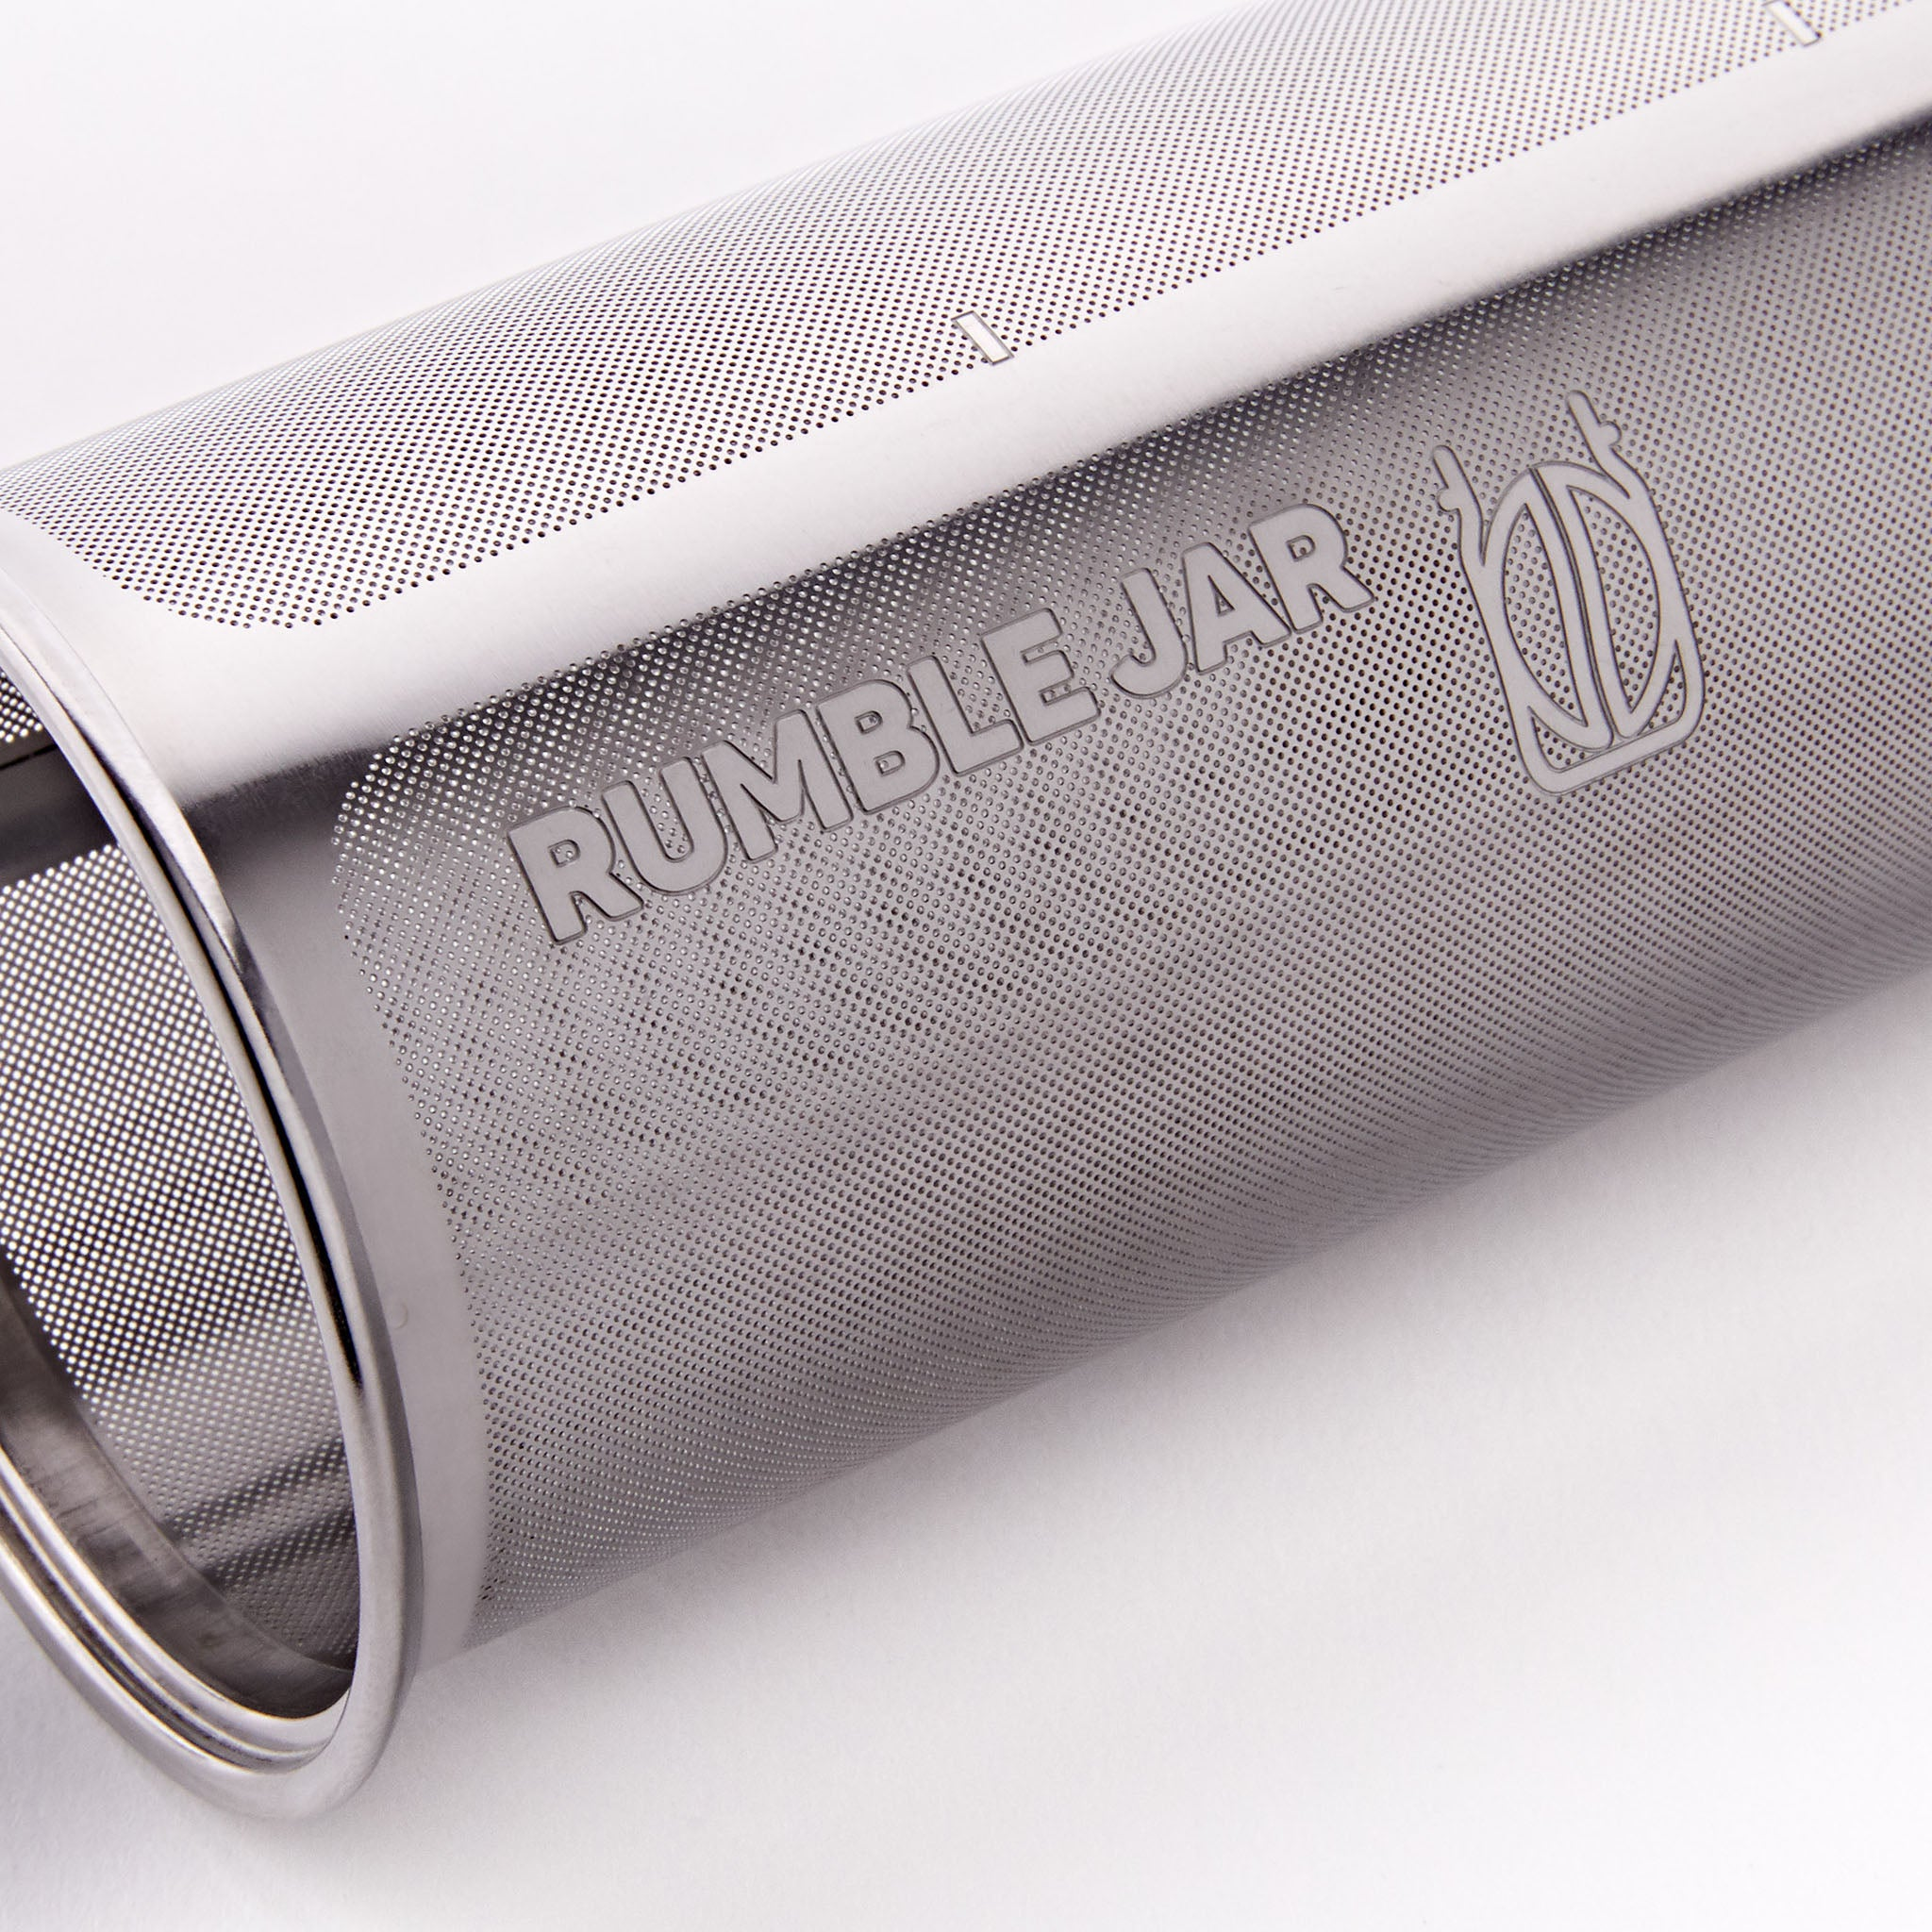 Rumble Jar features a sturdy etched filter design instead of a flimsy mesh filter